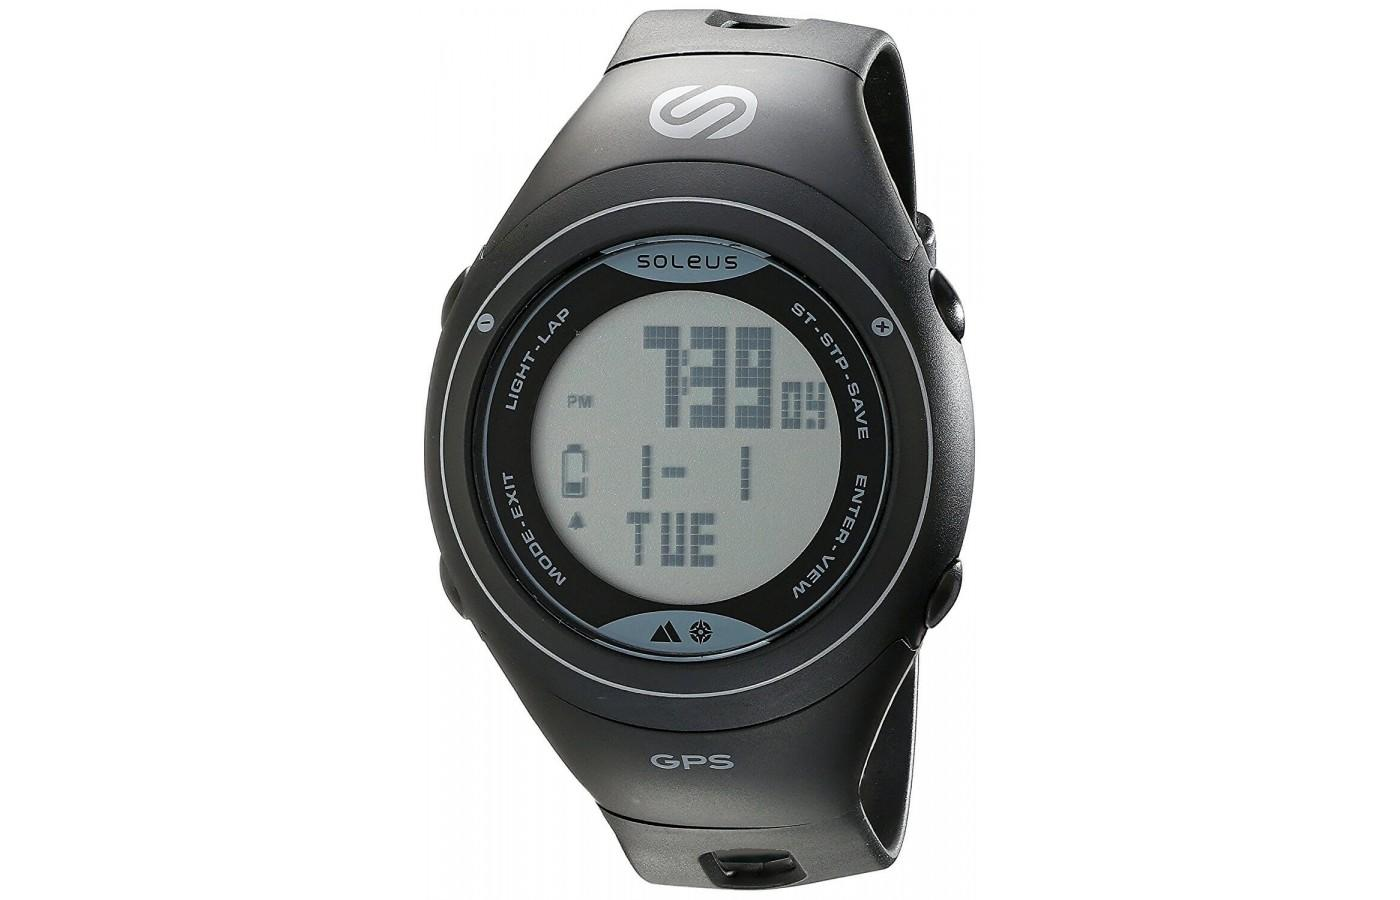 Soleus GPS Cross Country Fitness Watch in Black/Gray